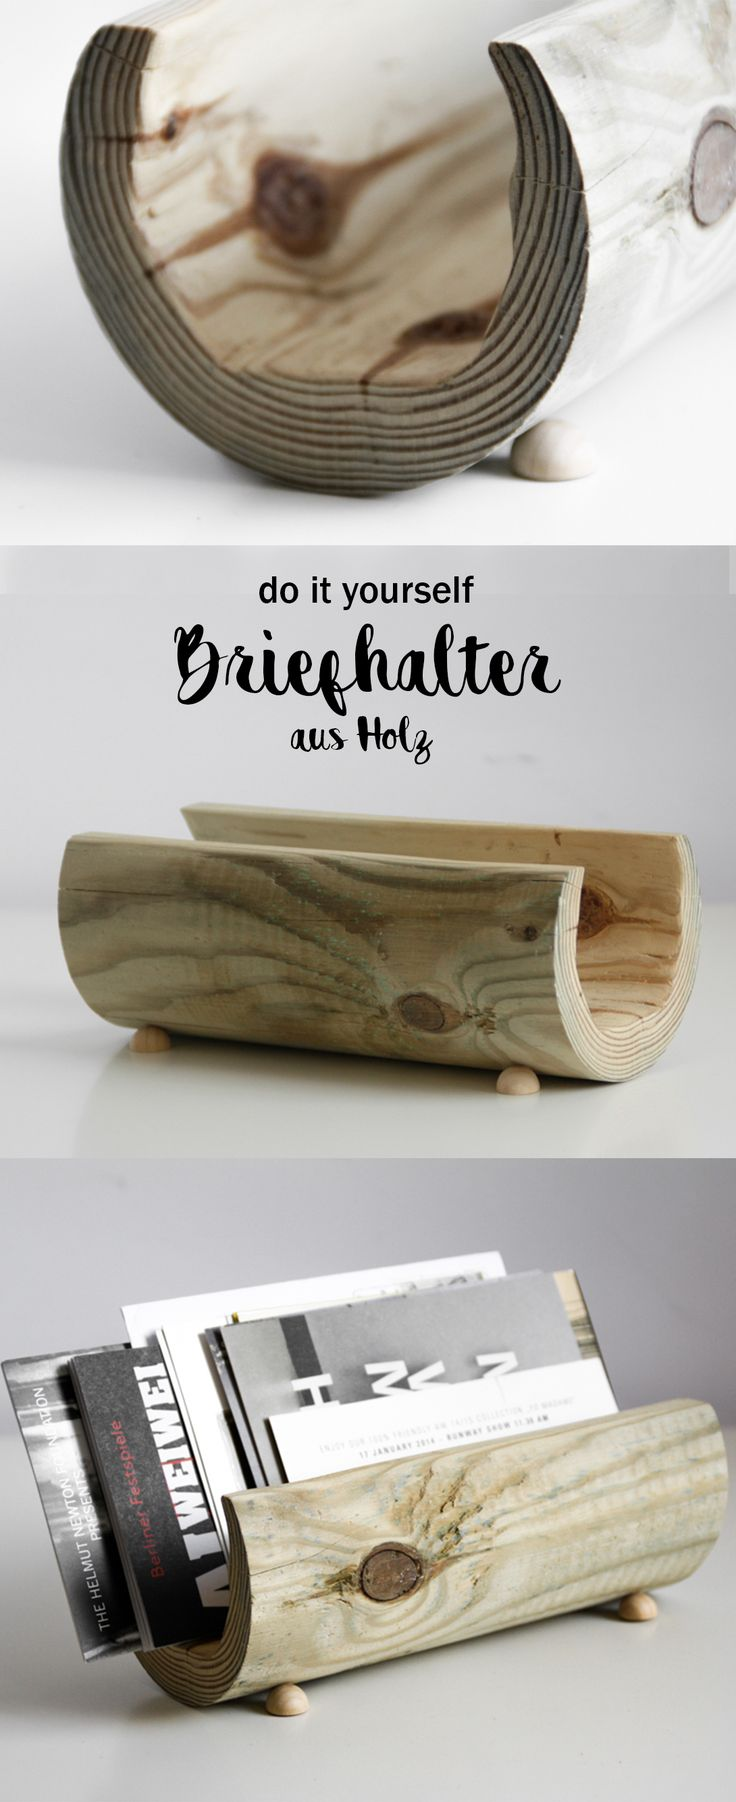 DIY Briefhalter aus Holz | Holzpfahl | Handwerk | Schreibtisch Organisation | Natürlich | wood desk organizer | letter holder | do it yourself Ideen ideas| Briefständer | Schnitzen | Geschenke | kreativ | Basteln | crafting |